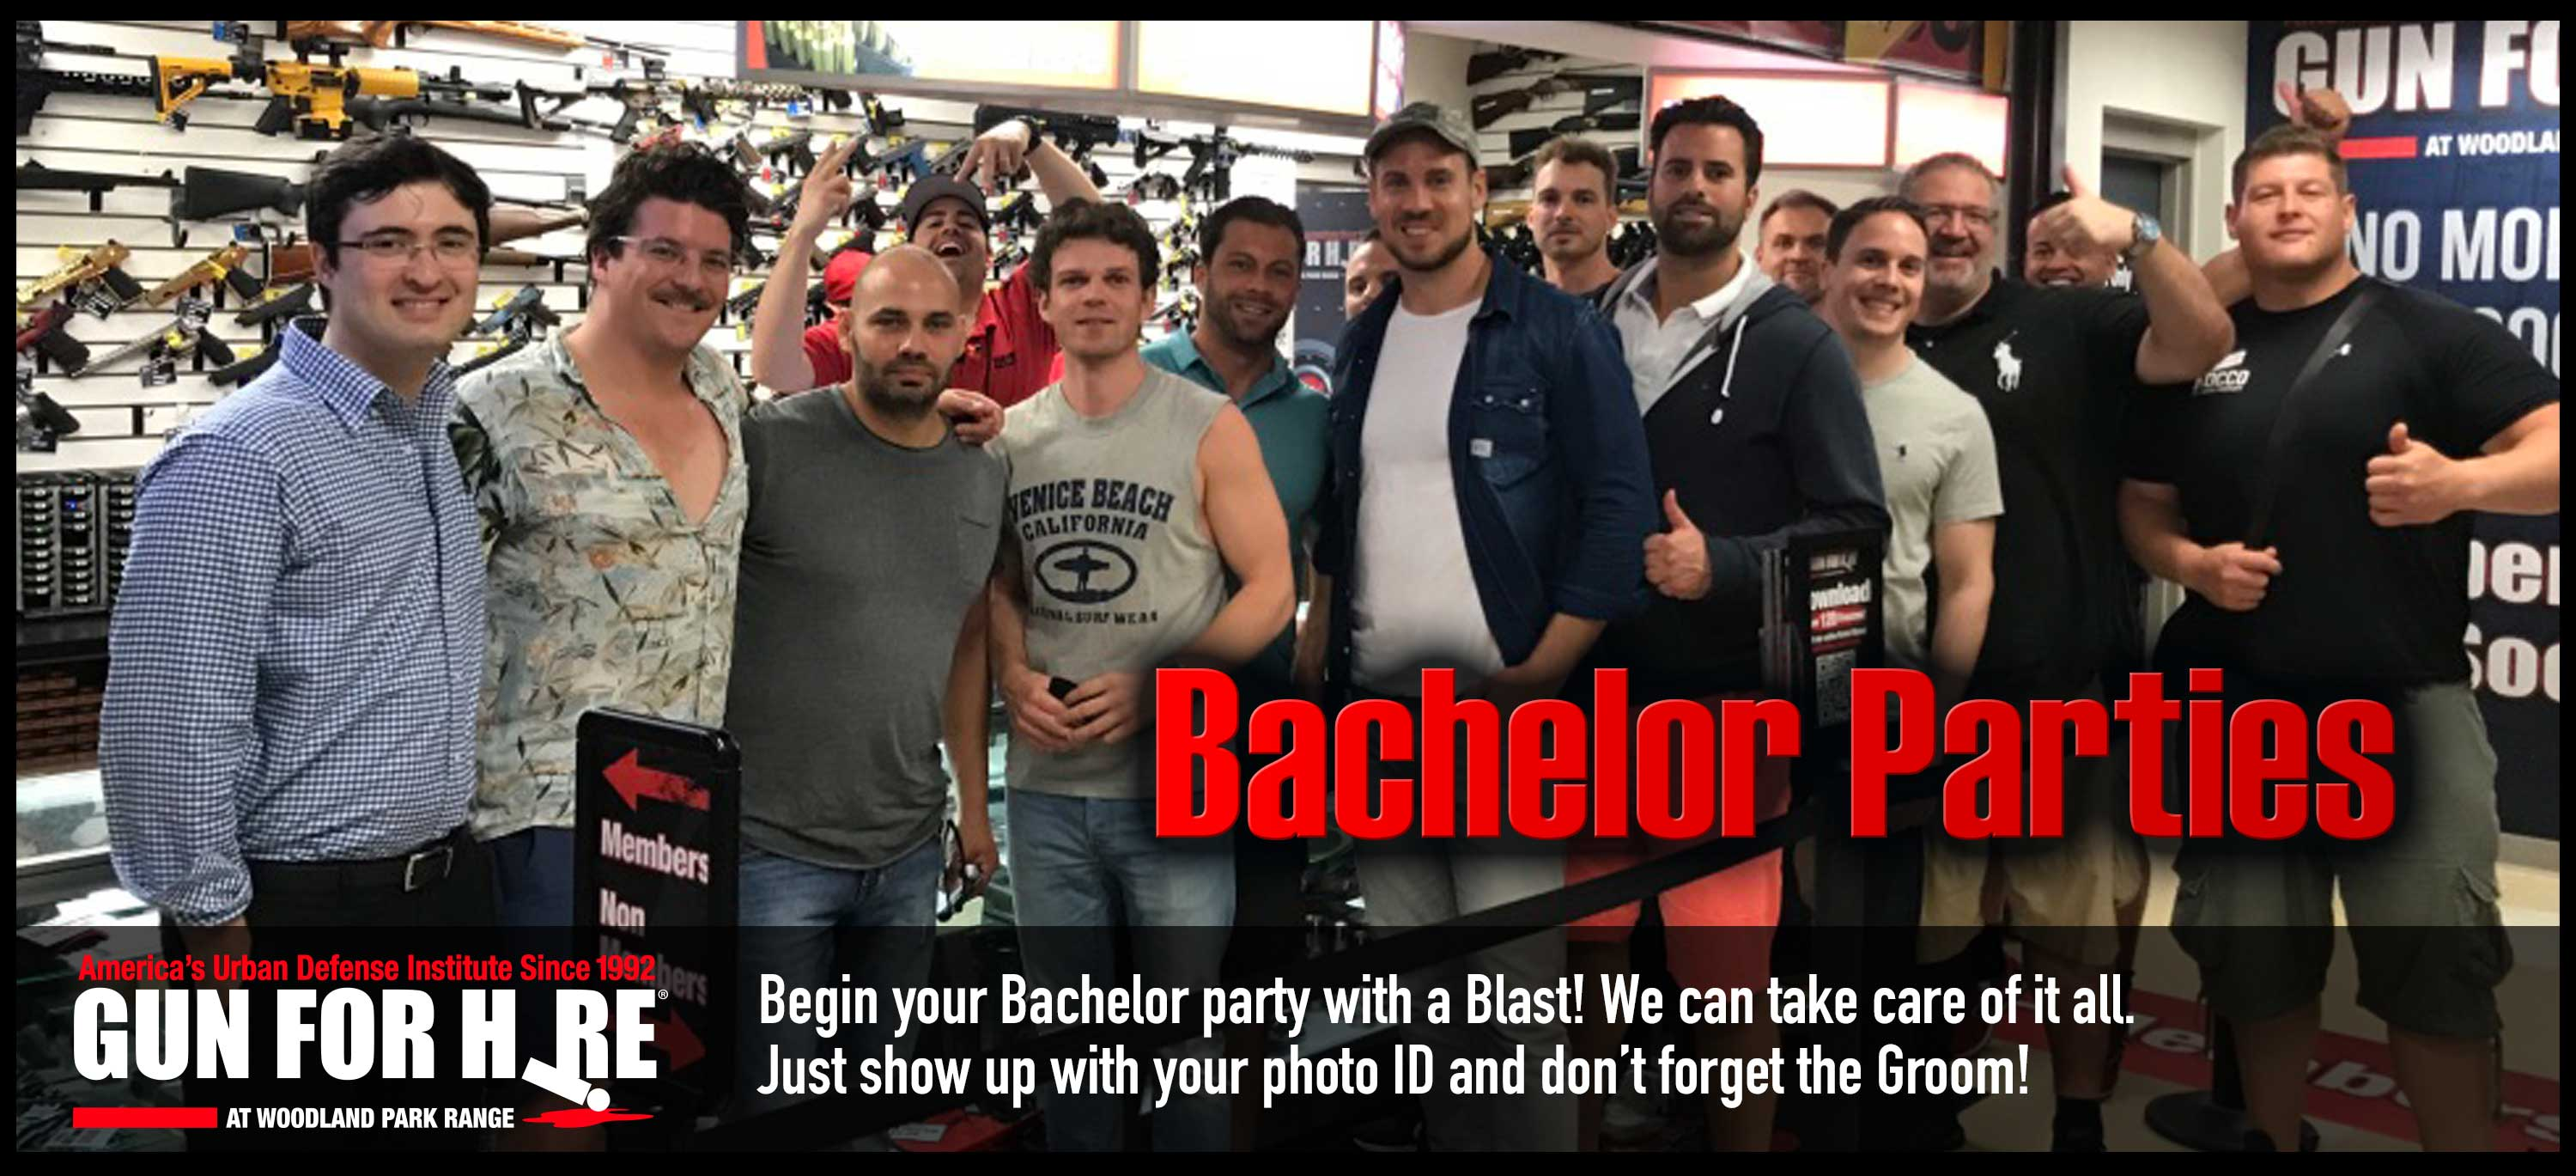 Bachelor Parties NYC Germany - Shooting Range Bachelor Party